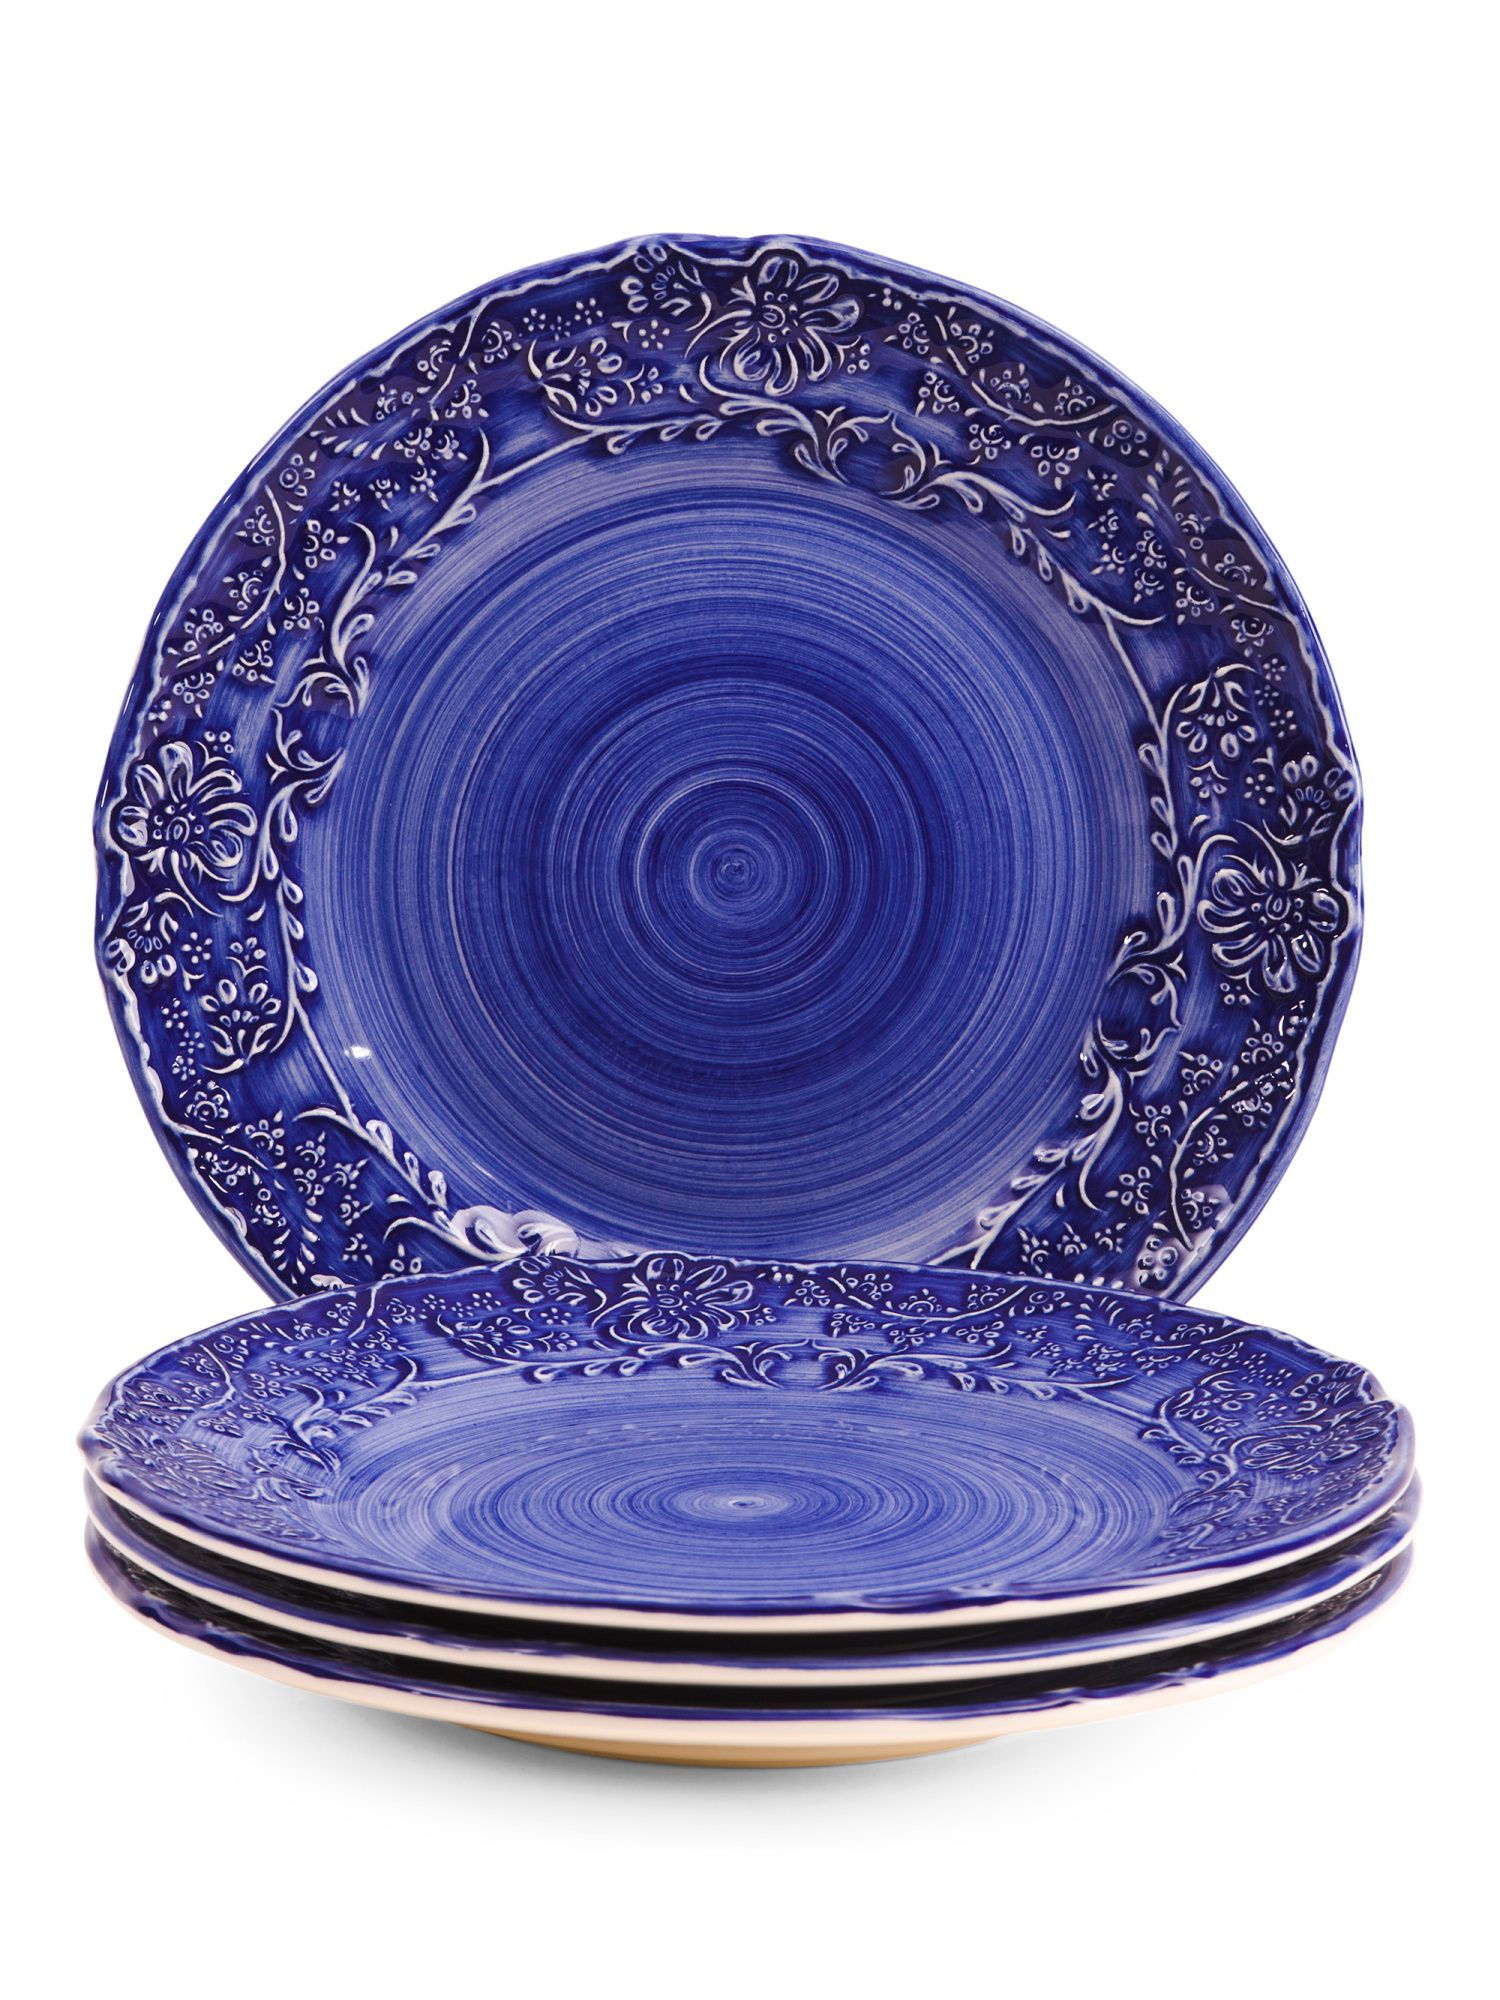 Made In Portugal Dinnerware Homegoods : portugal, dinnerware, homegoods, Portugal, Juliet, Plates, Kitchen, Dining, T.J.Maxx, Plates,, Room,